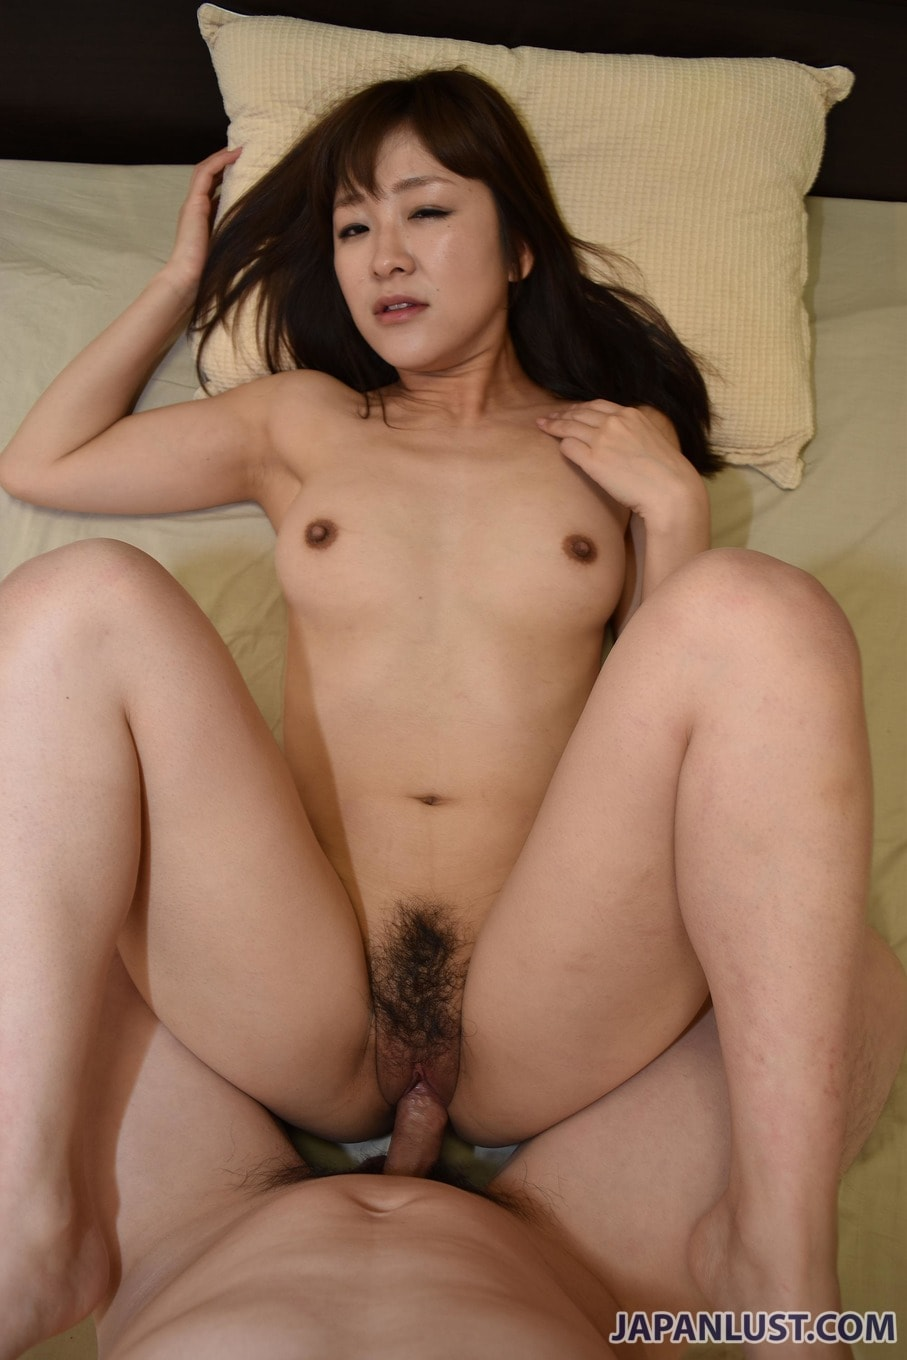 Japanese Amateur Wife Creampie